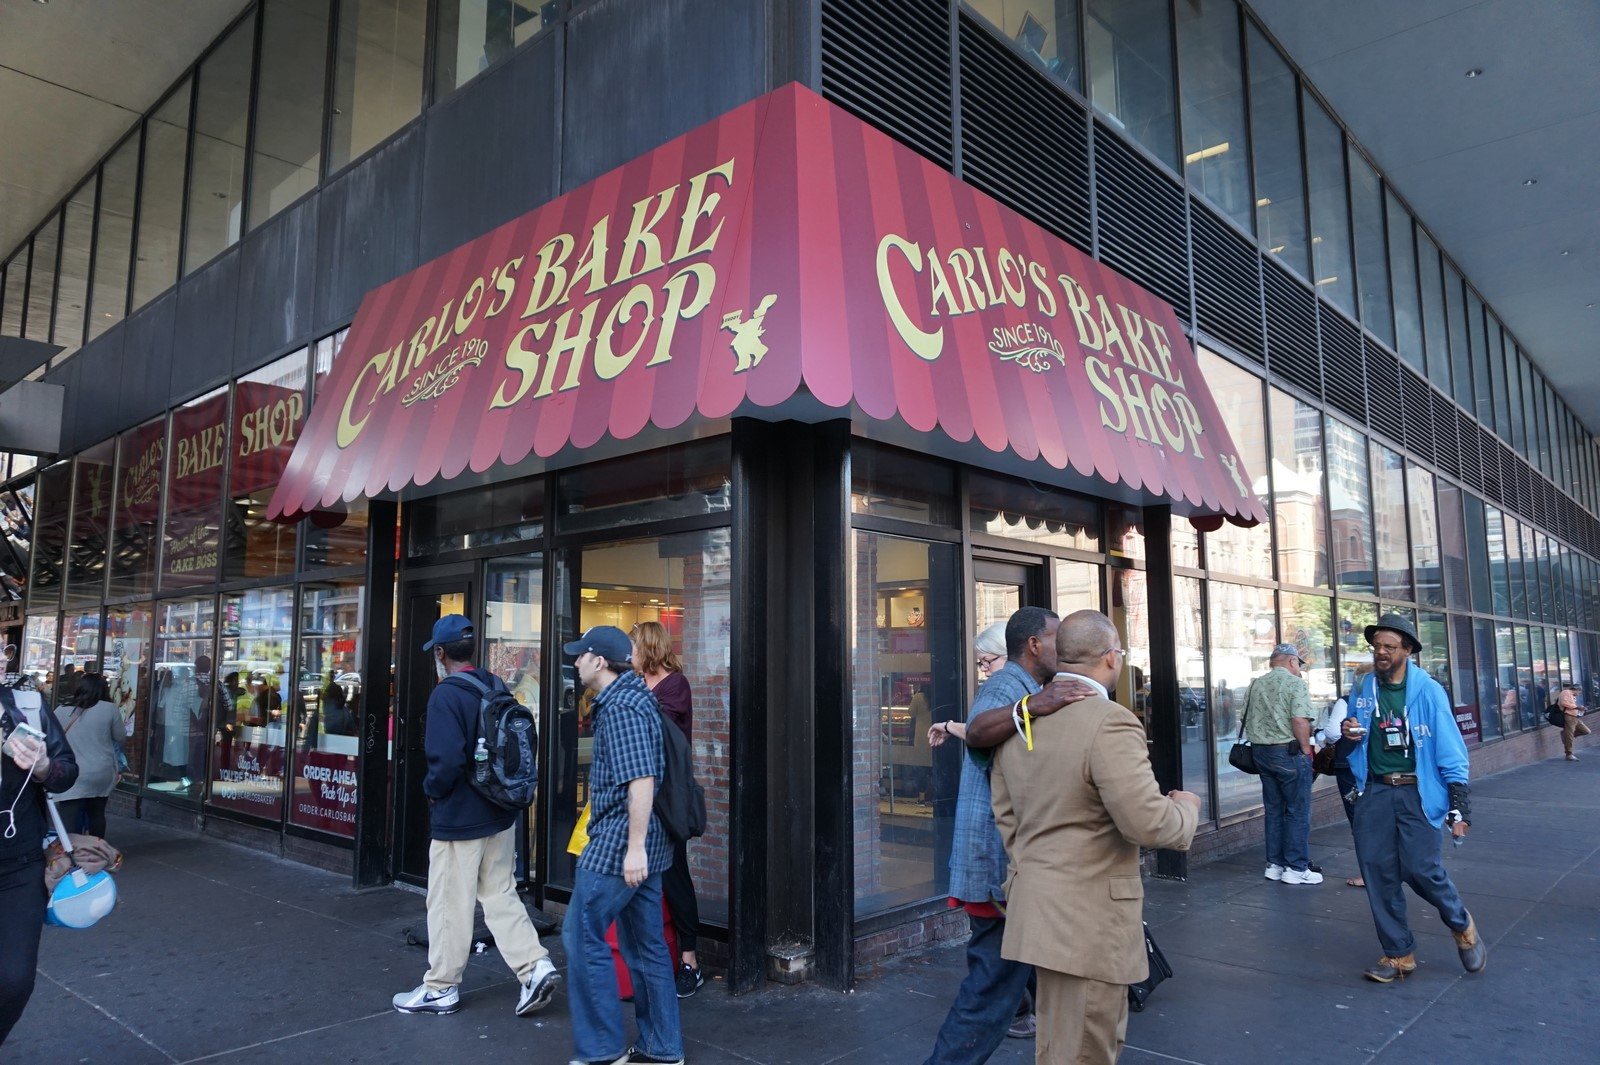 Carlos Bake Shop The baker that does the impossible in New York